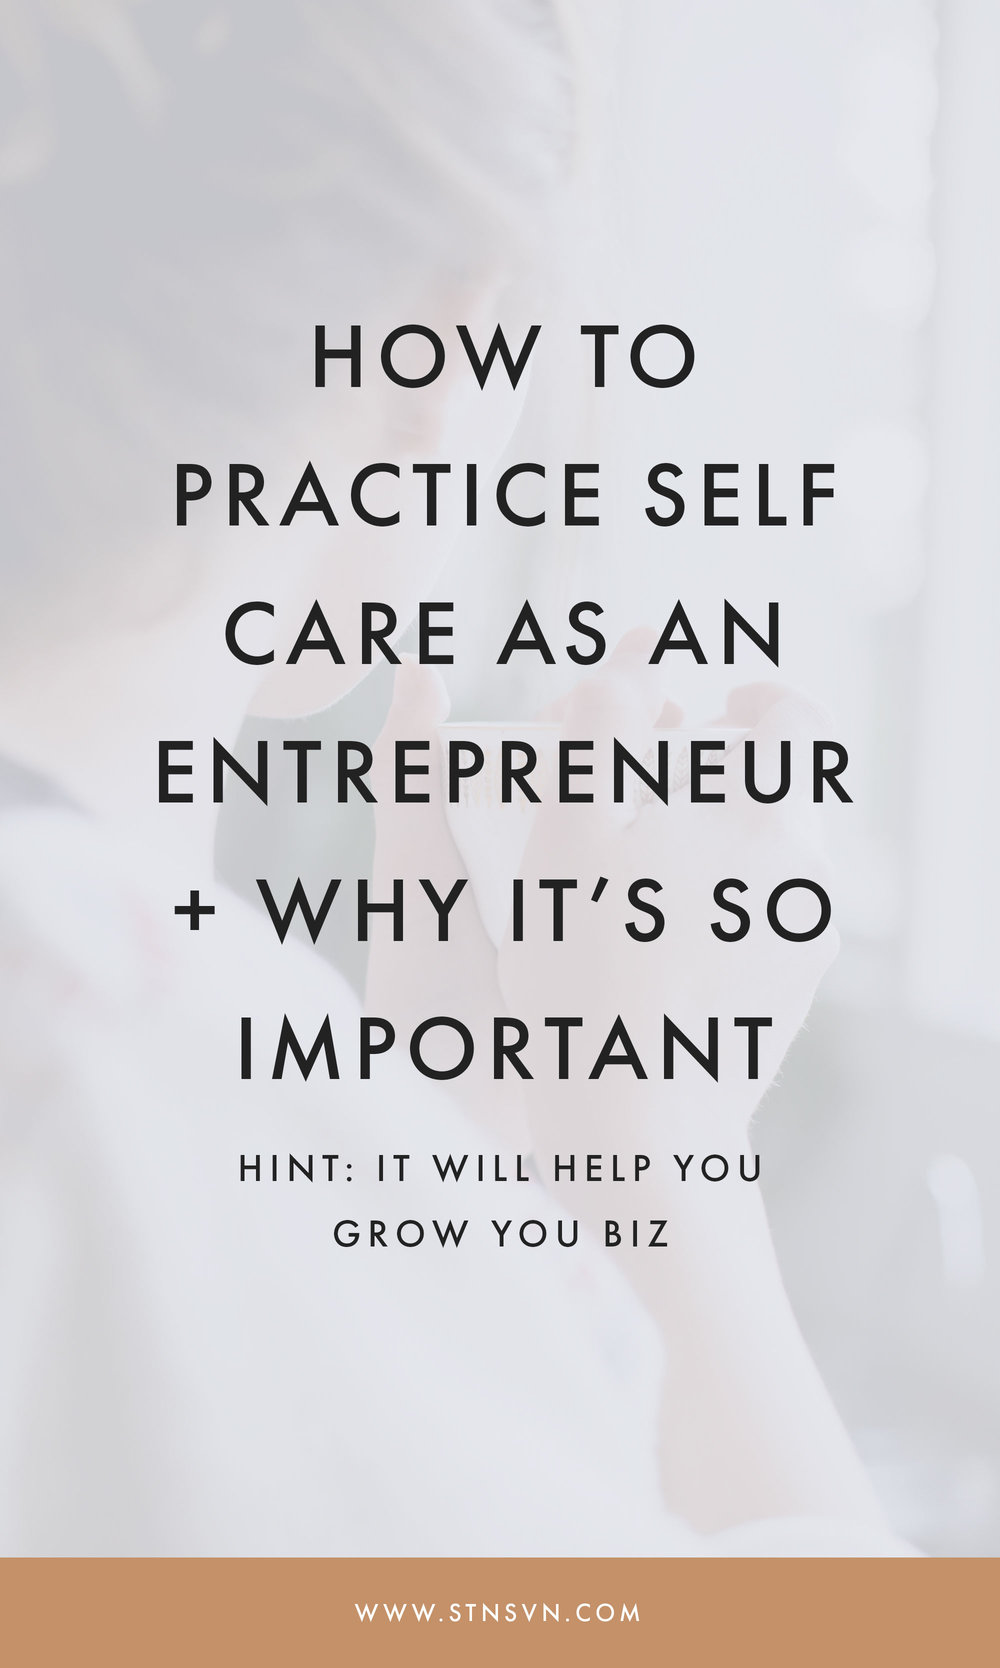 How to Practice Self-Care as an Entrepreneur.jpeg